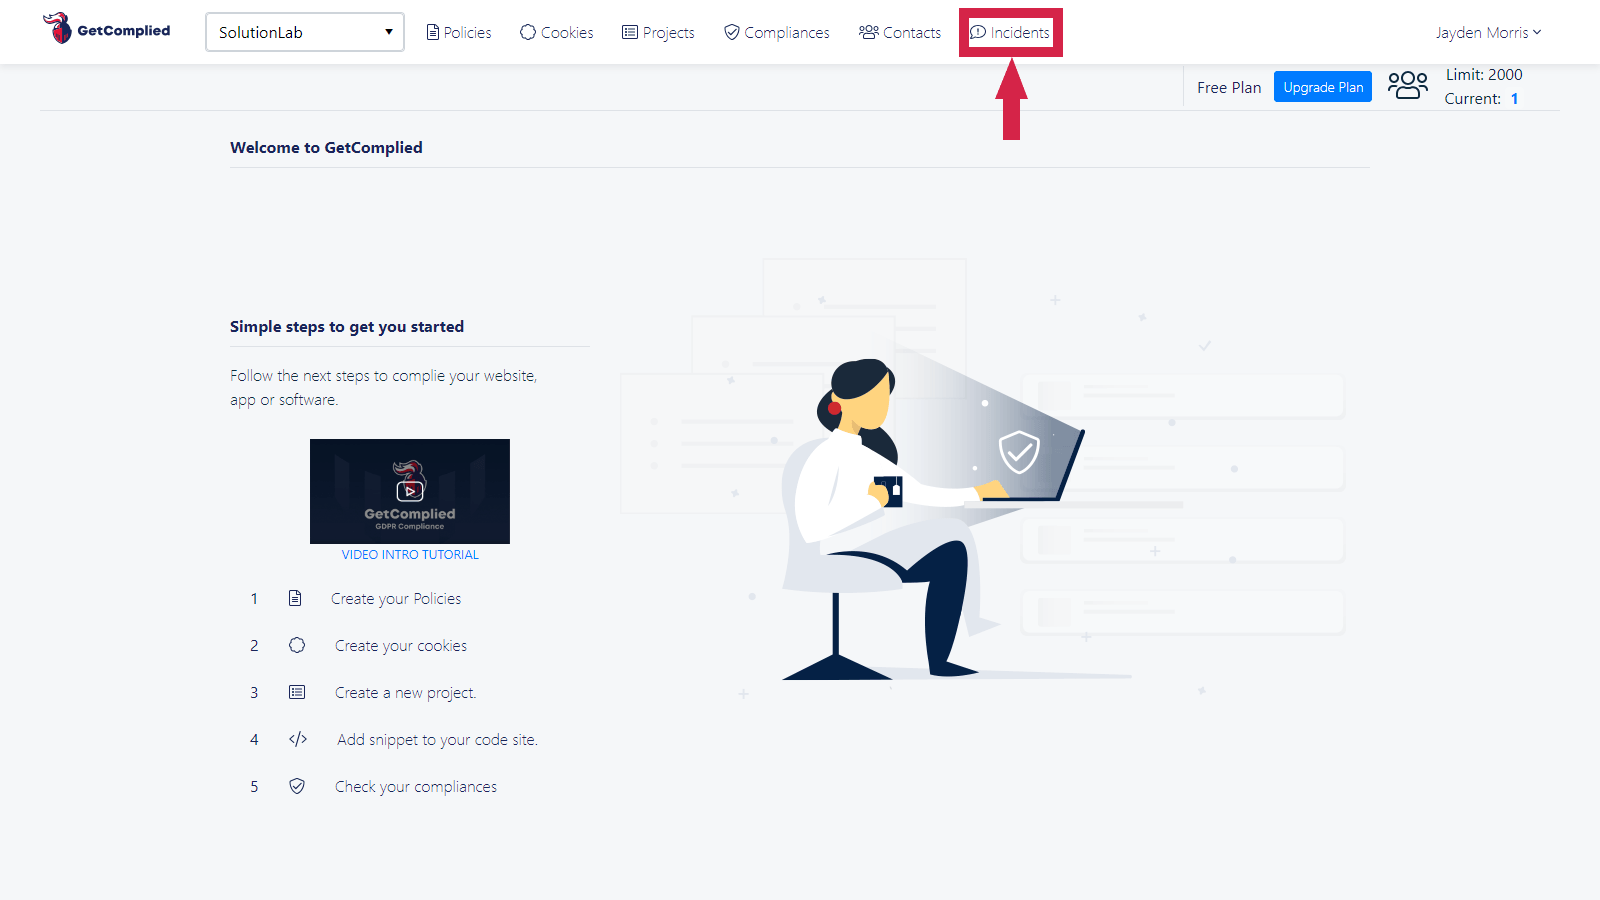 GetComplied manage incidents